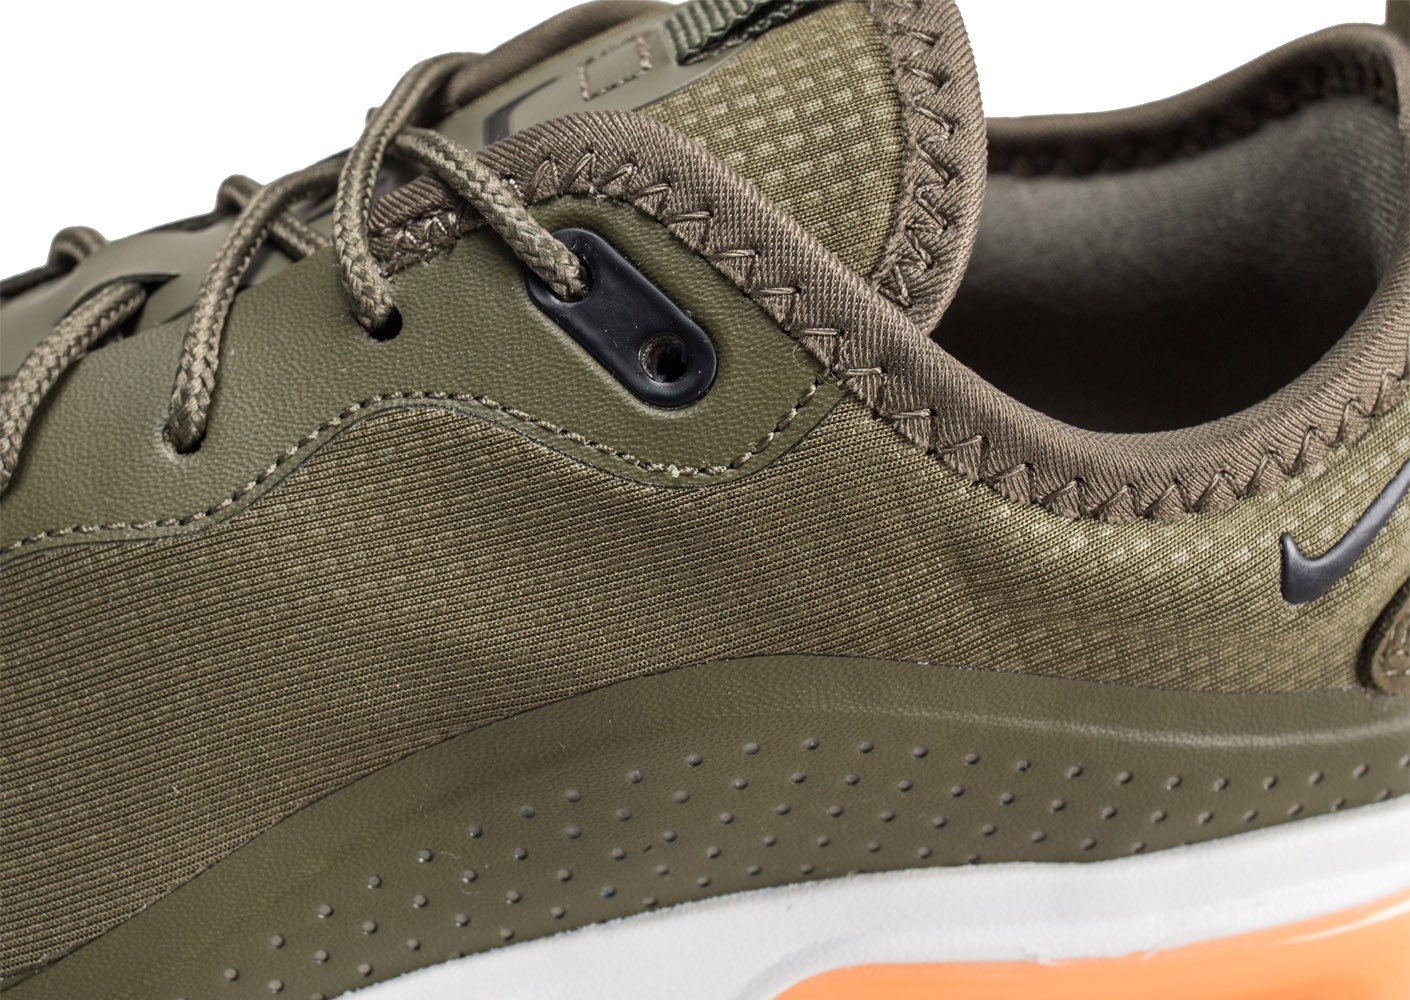 Nike Air Max Dia Olive femme - Chaussures Baskets femme ...